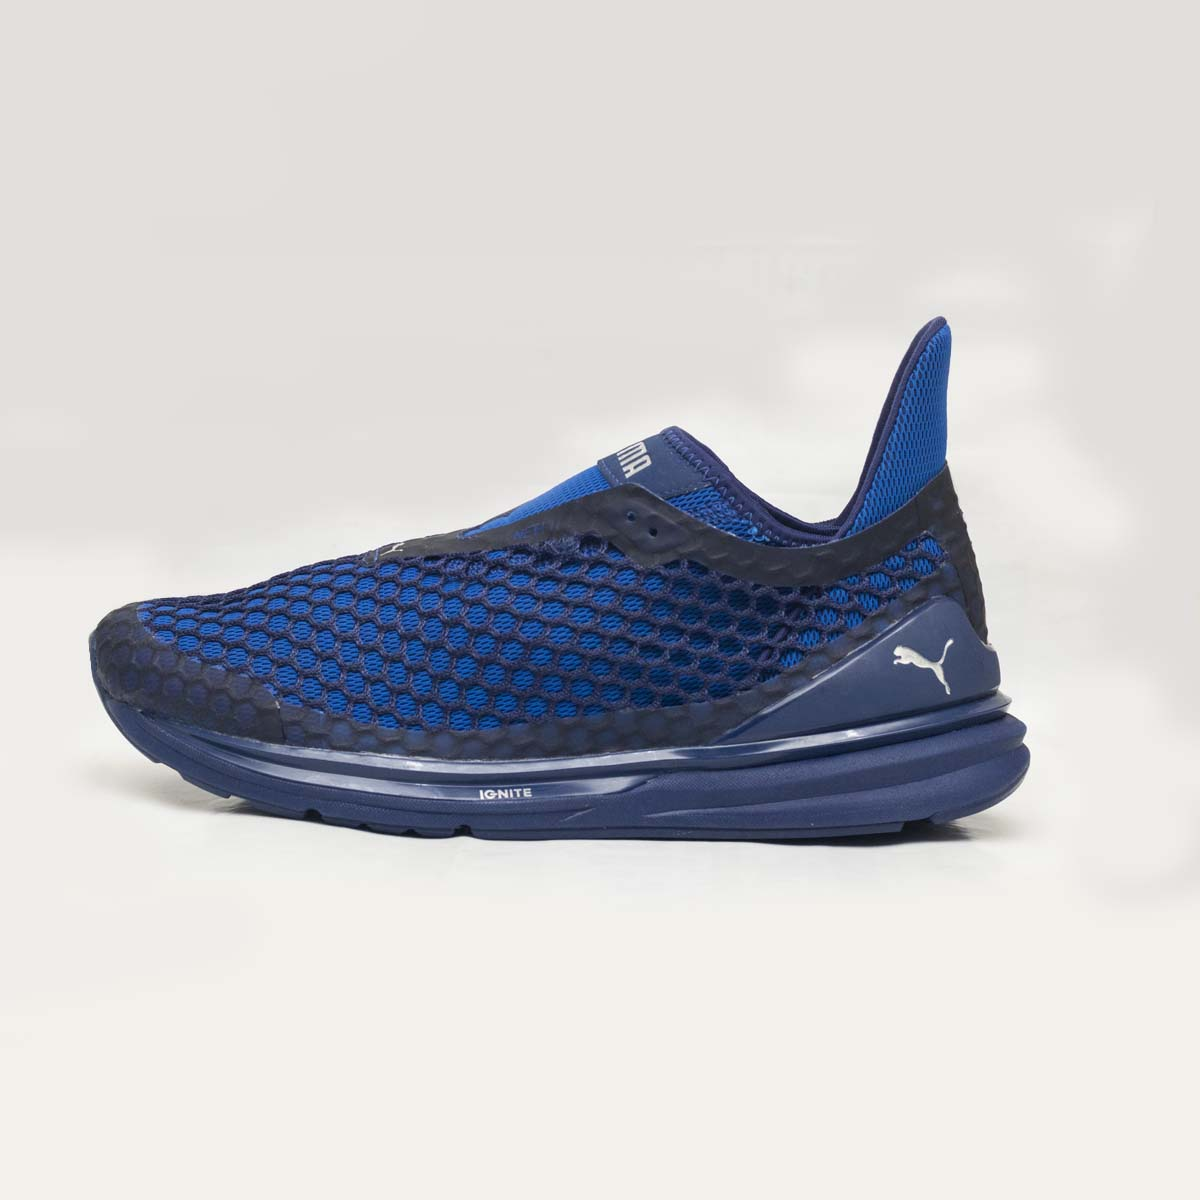 half off e1612 bff8f Puma Ignite Limitless NetFit Sneakers Diamu